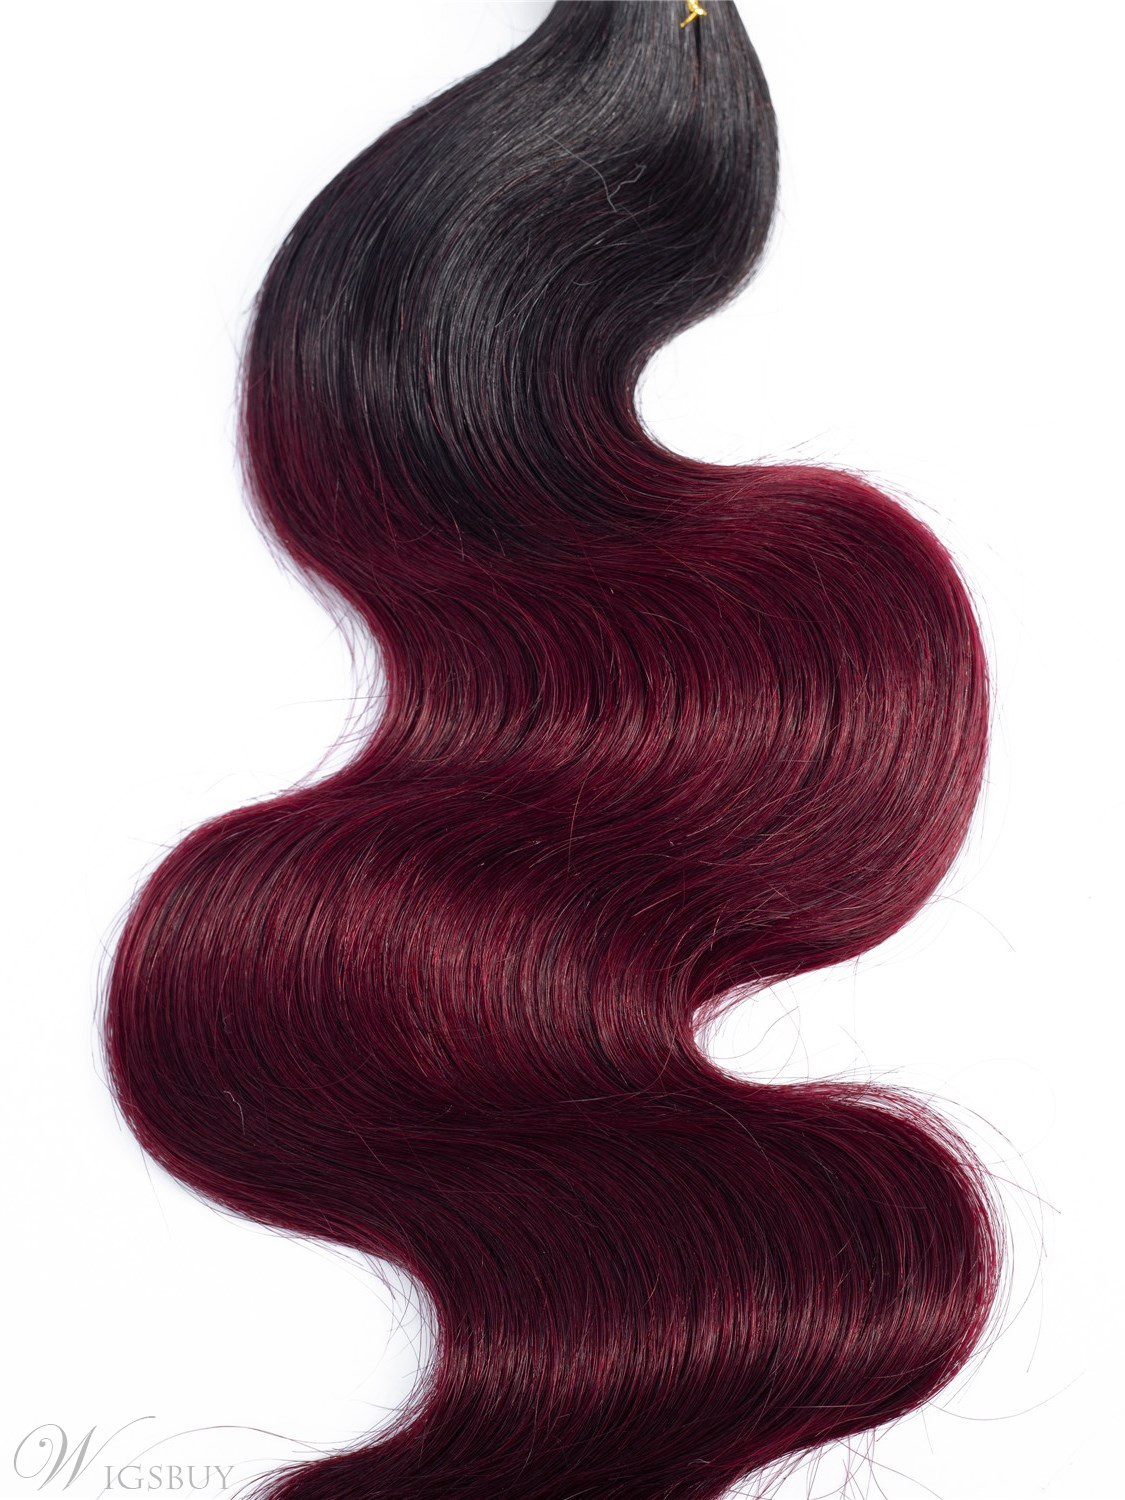 Wigubuy Human Hair Bundles Body Wave Weaves 3 Bundles T1B/BUG